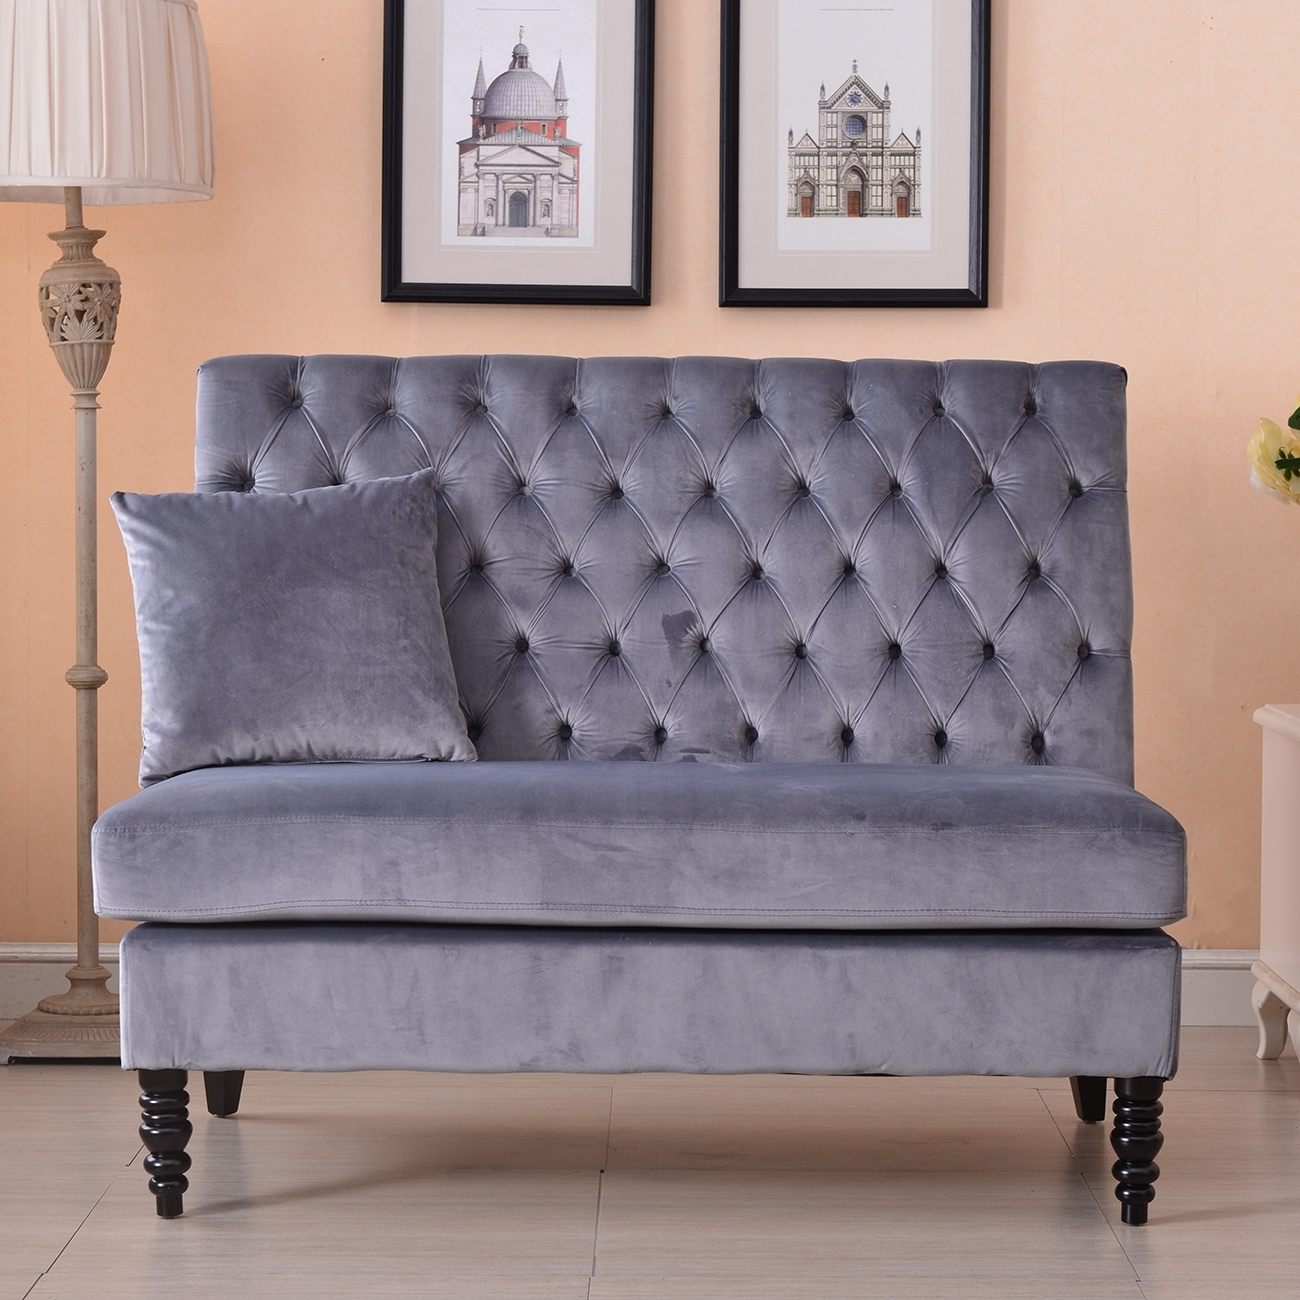 2019 Sofas With High Backs For Buying Guide High Back Sofa (View 19 of 20)